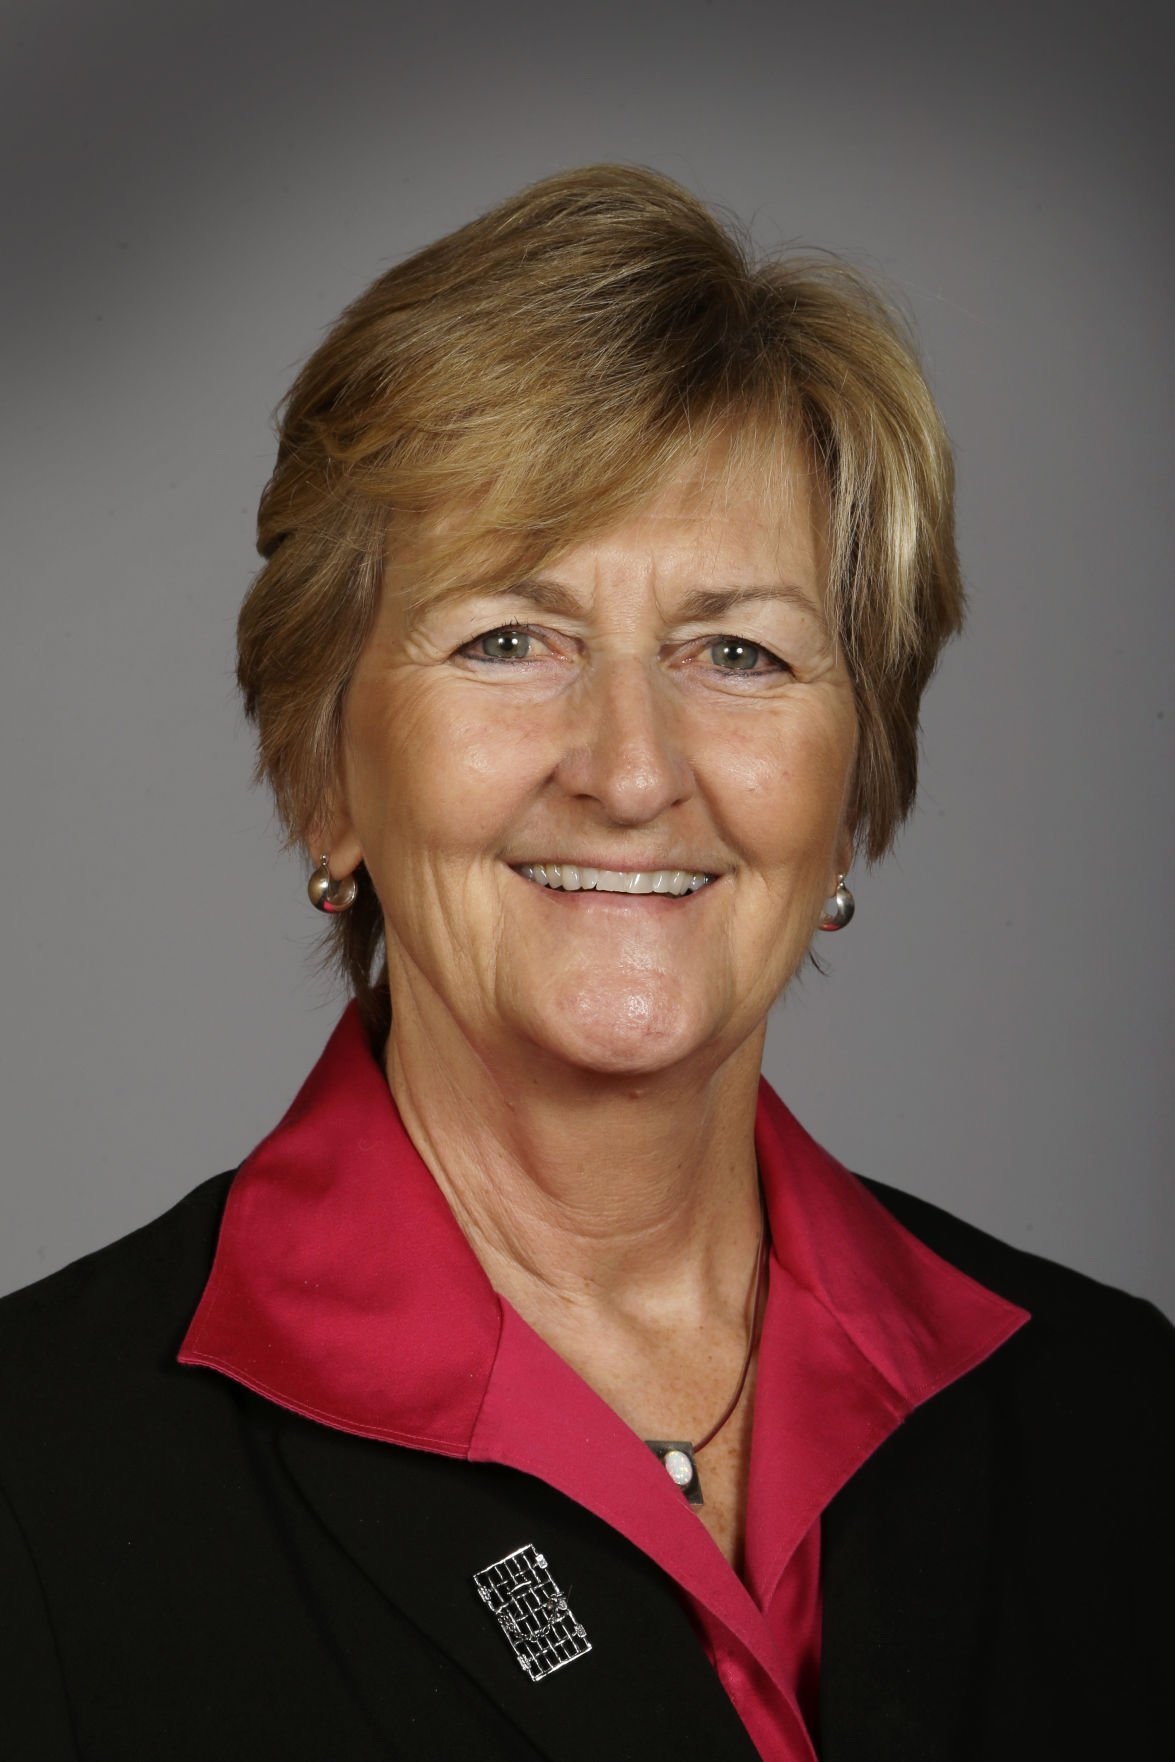 Iowa state Rep. Sharon Steckman